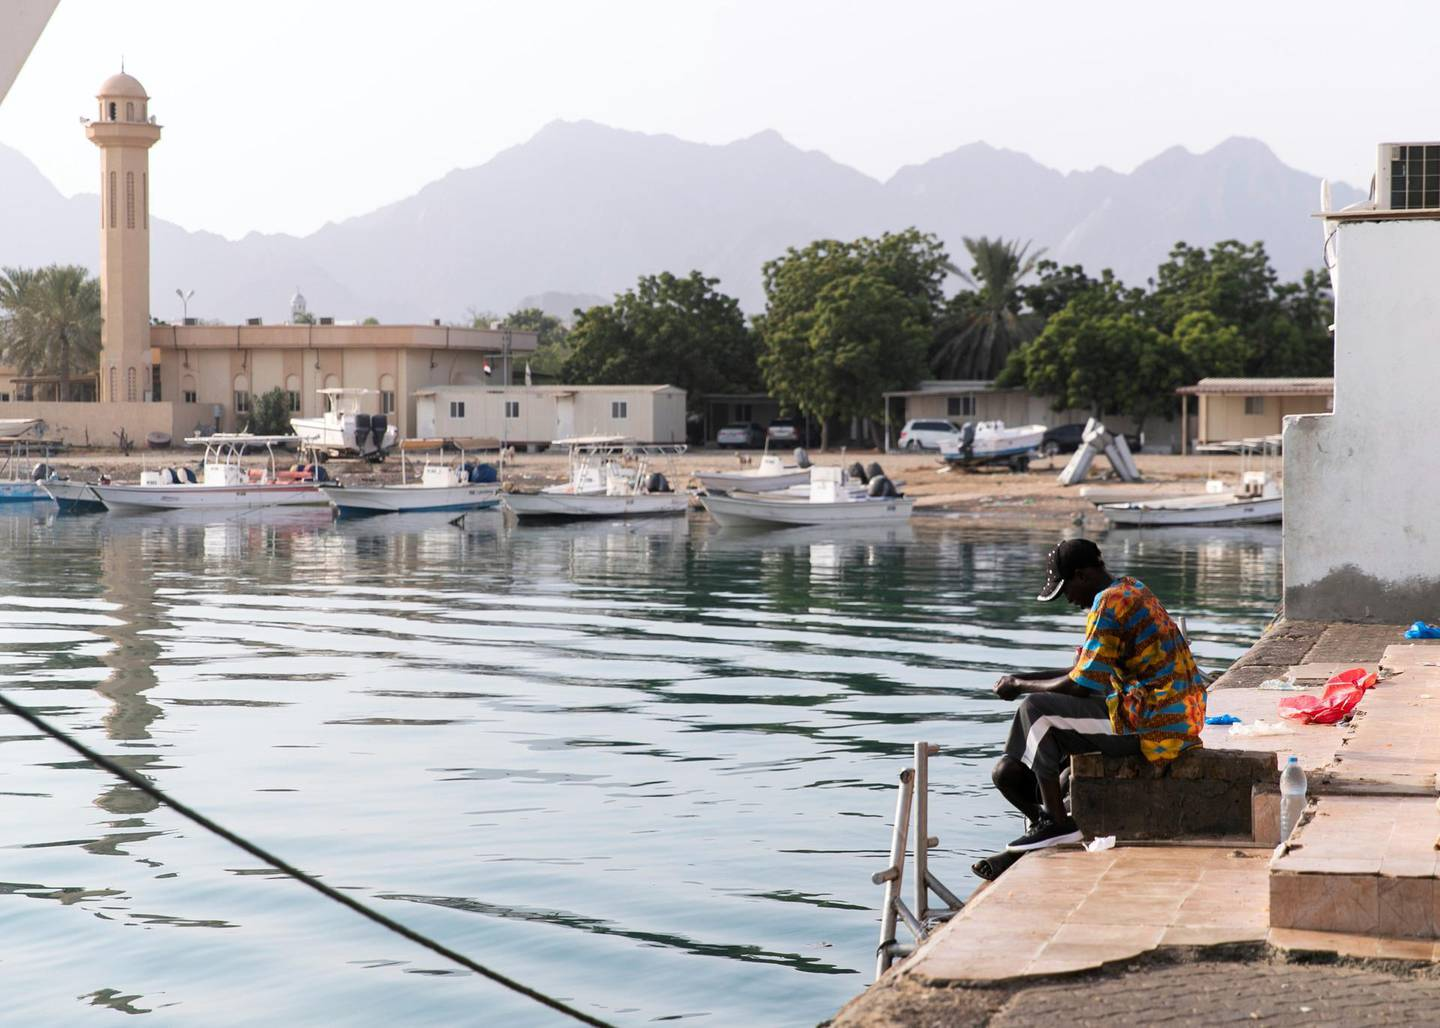 FUJAIRAH, UNITED ARAB EMIRATES. 3 AUGUST 2020. Two men fish in Dibba Al Fujairah's port.The UAE is calling on more volunteer divers to help restore and replant coral reefs in the open waters of Fujairah.Over the next five days, teams of volunteers will take fresh coral from Dibba Fujairah Port and replant it further out at sea, about 1km from Dibba Rock, a popular diving spot in the emirate.  The campaign is part of an initiative by the Ministry of Climate Change and Environment and Fujairah Adventure Centre to help sustain and grow marine life in UAE waters.(Photo: Reem Mohammed/The National)Reporter:Section: